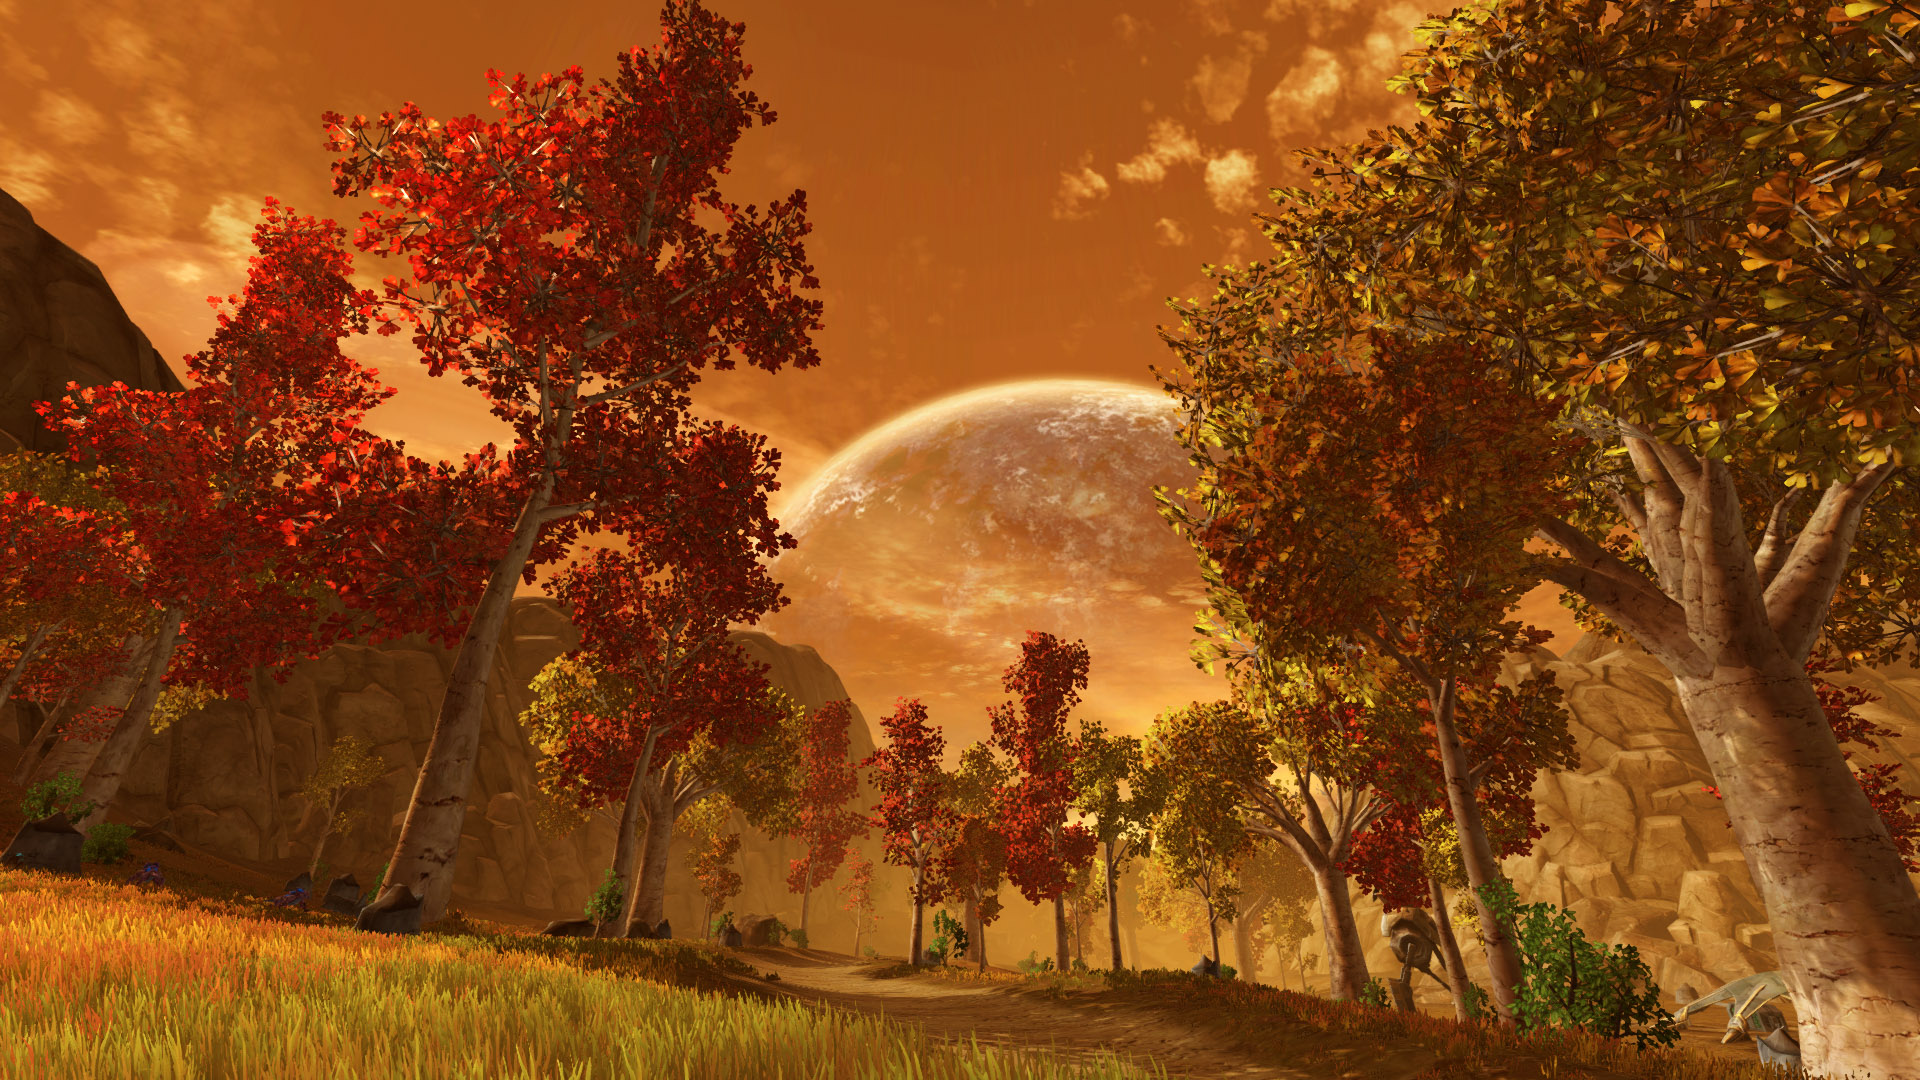 SWTOR screenshot with the landscape of Voss, showing yellow grass, trees with red or yellow foliage, a rocky environment and a huge sun in an orange sky